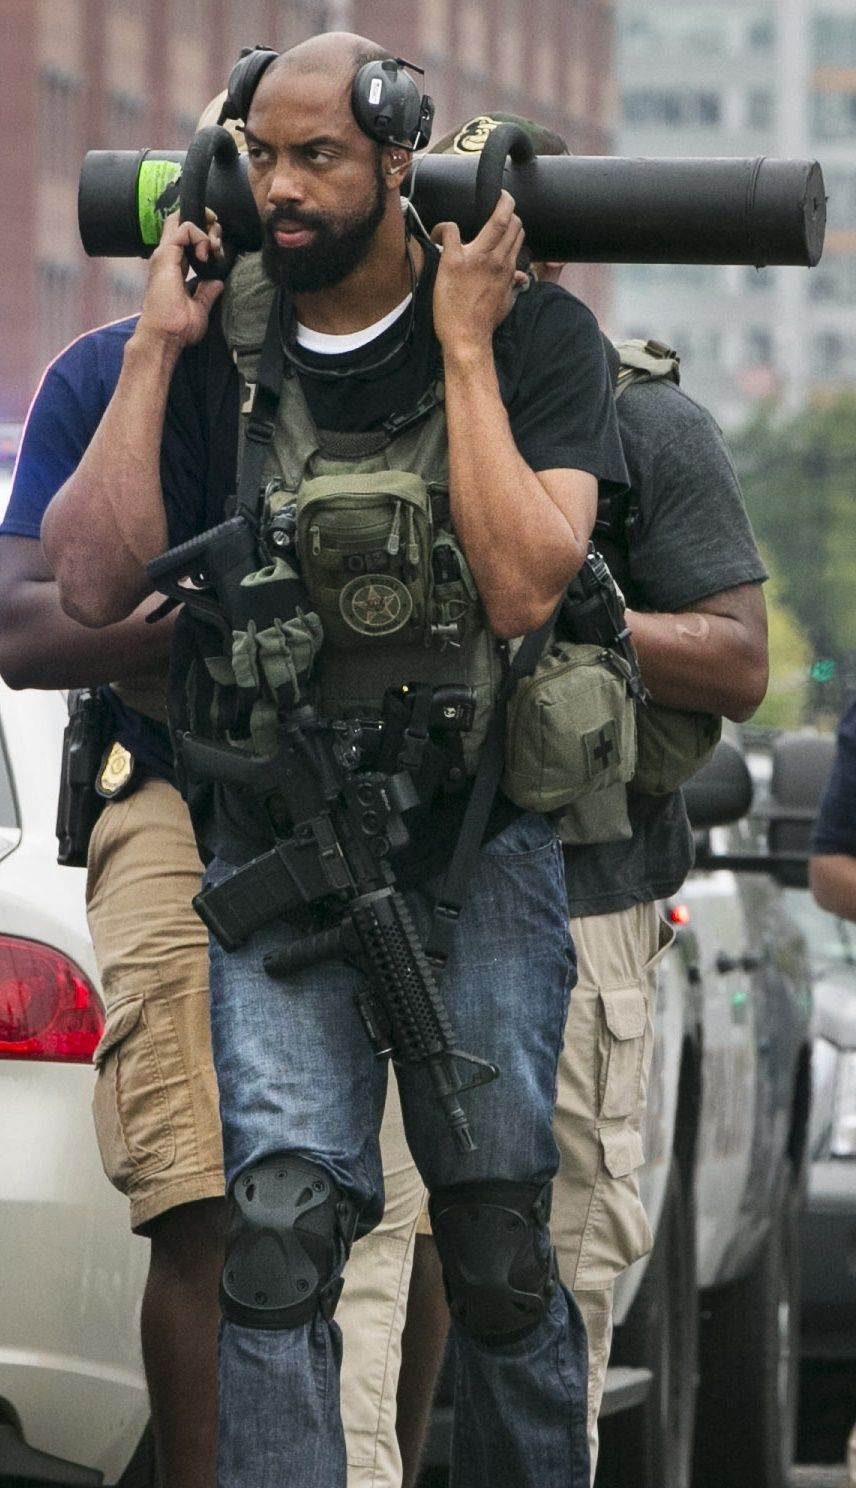 US Marshal, perhaps from Special Operation Group. US